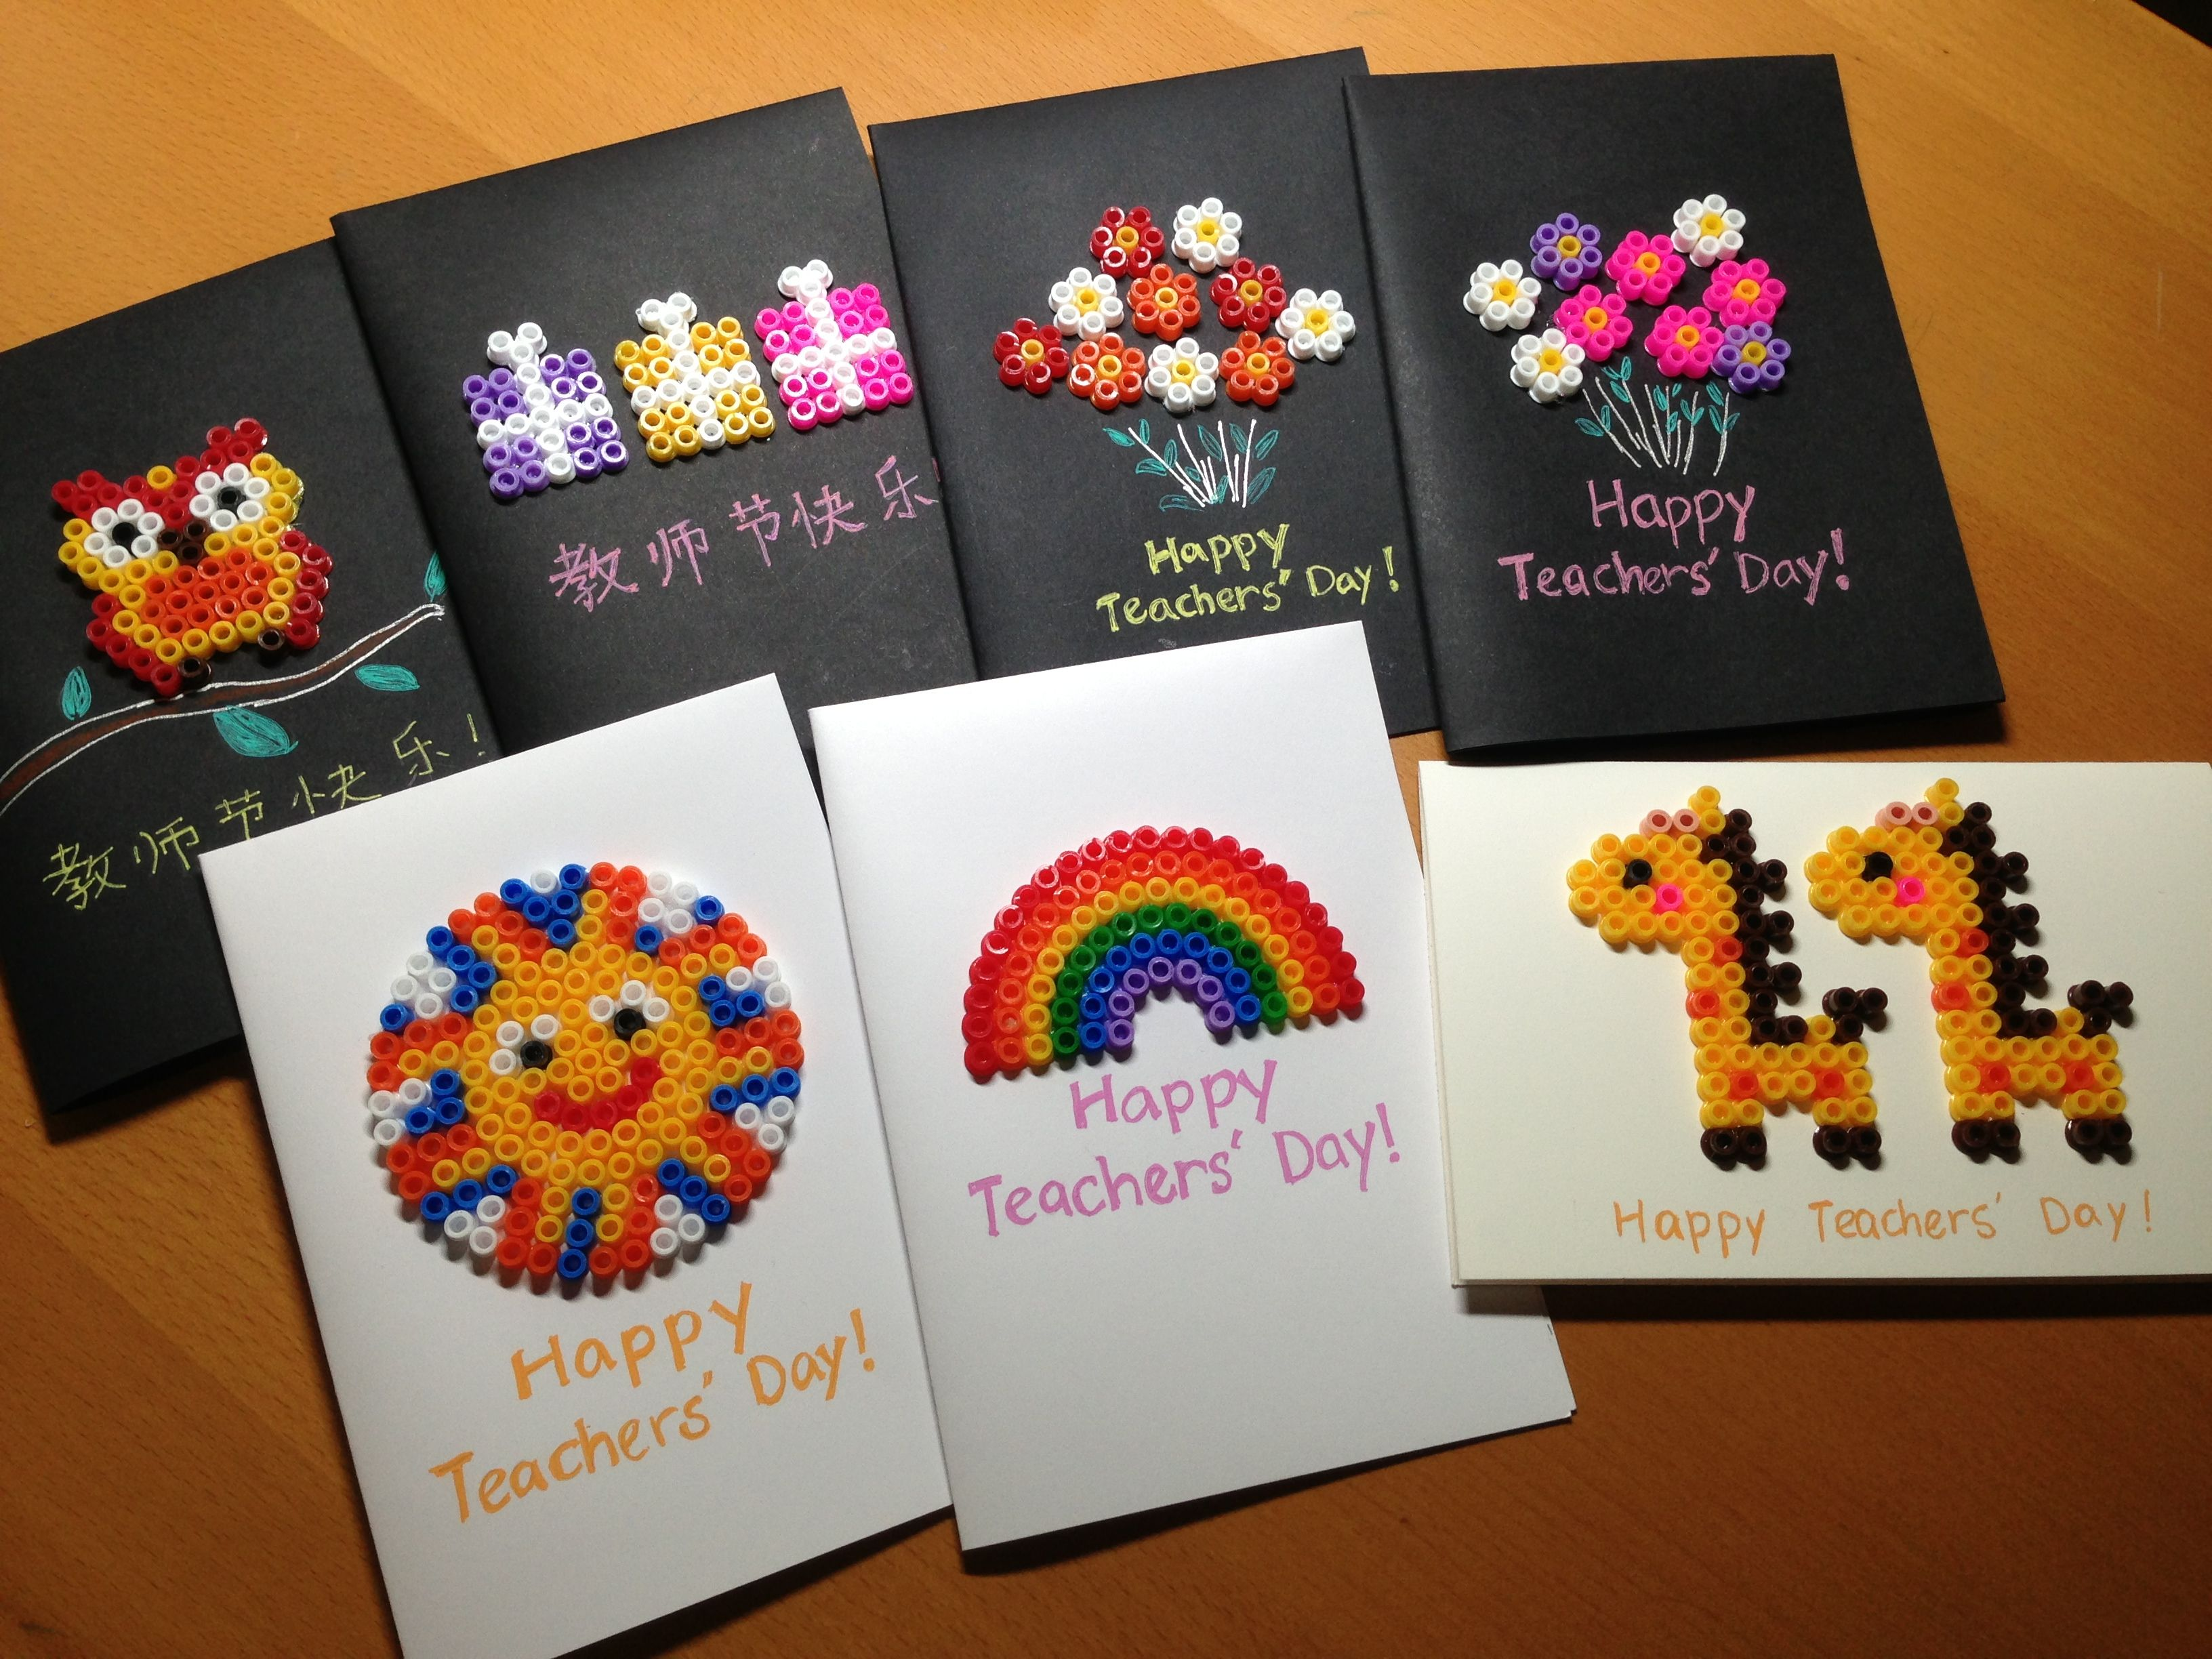 Teachers Day Card Making Ideas Part - 25: Hama Beads Teachersu0027 Day Cards. :)